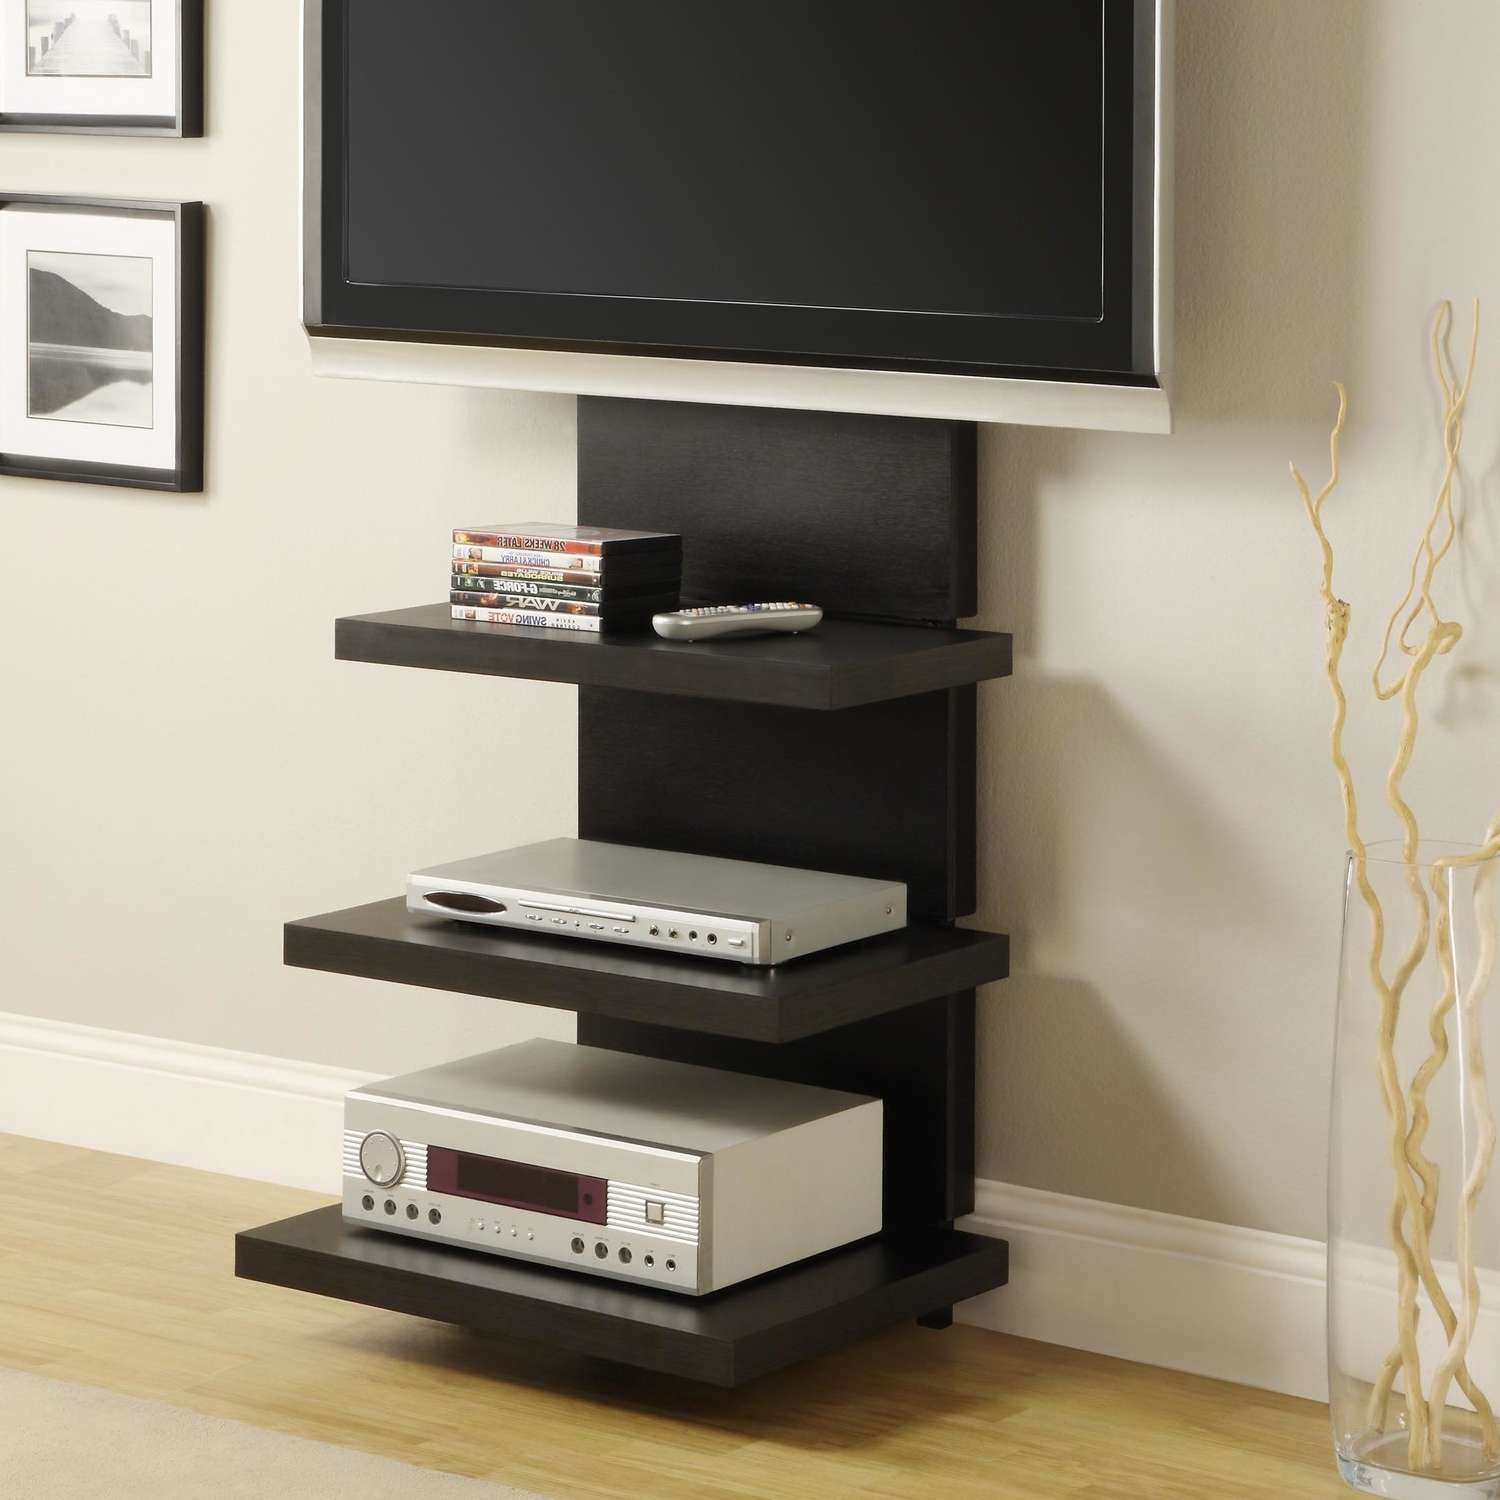 Wall Mounteddia Cabinet Black Stained Wood Storage And Tv Stand Intended For Wall Mounted Tv Stands Entertainment Consoles (View 11 of 15)